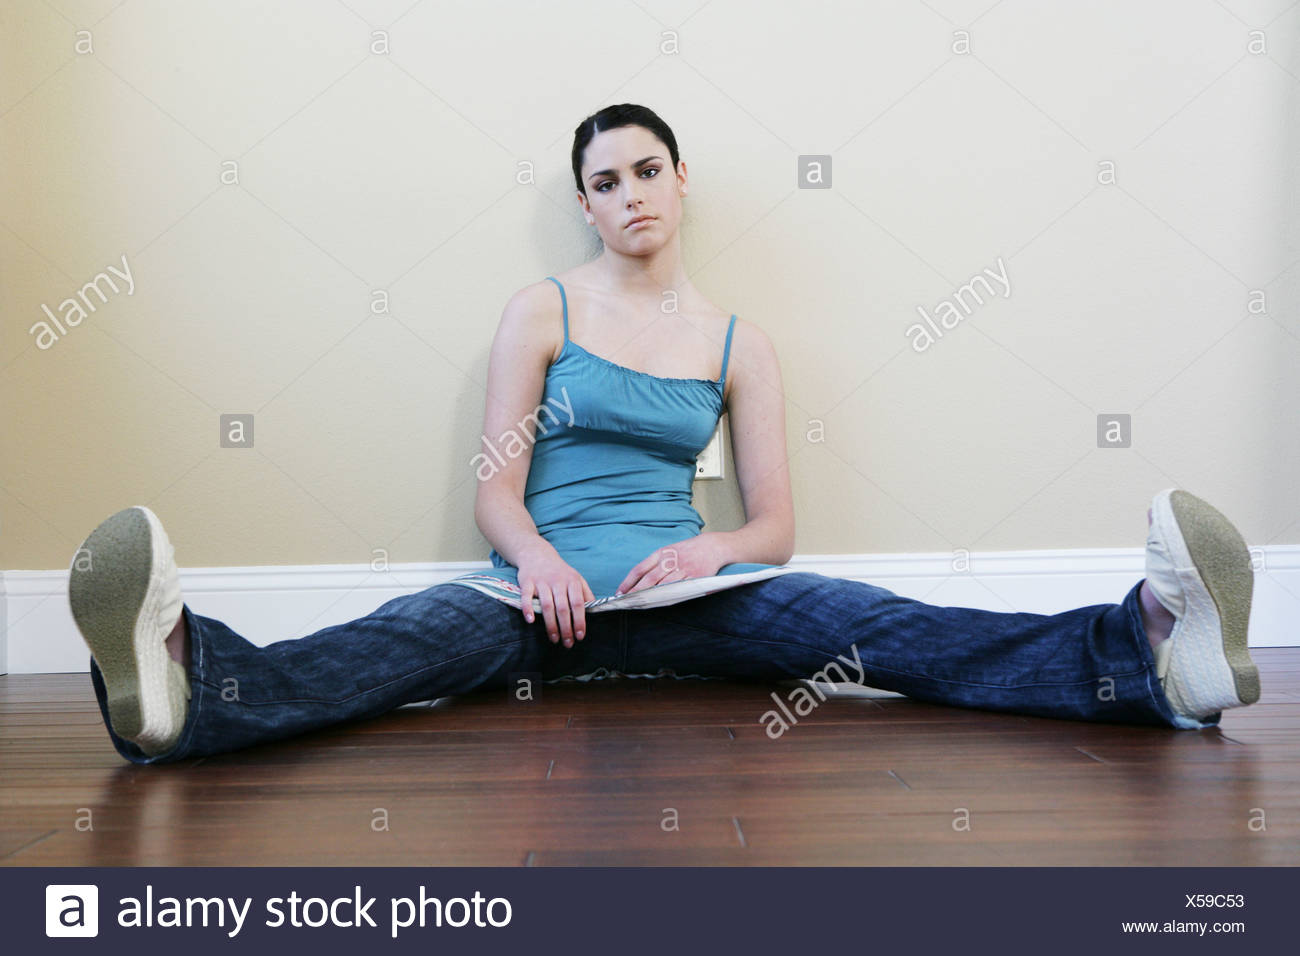 Woman Sitting With Legs Wide Open Stock Photos  Woman -1053